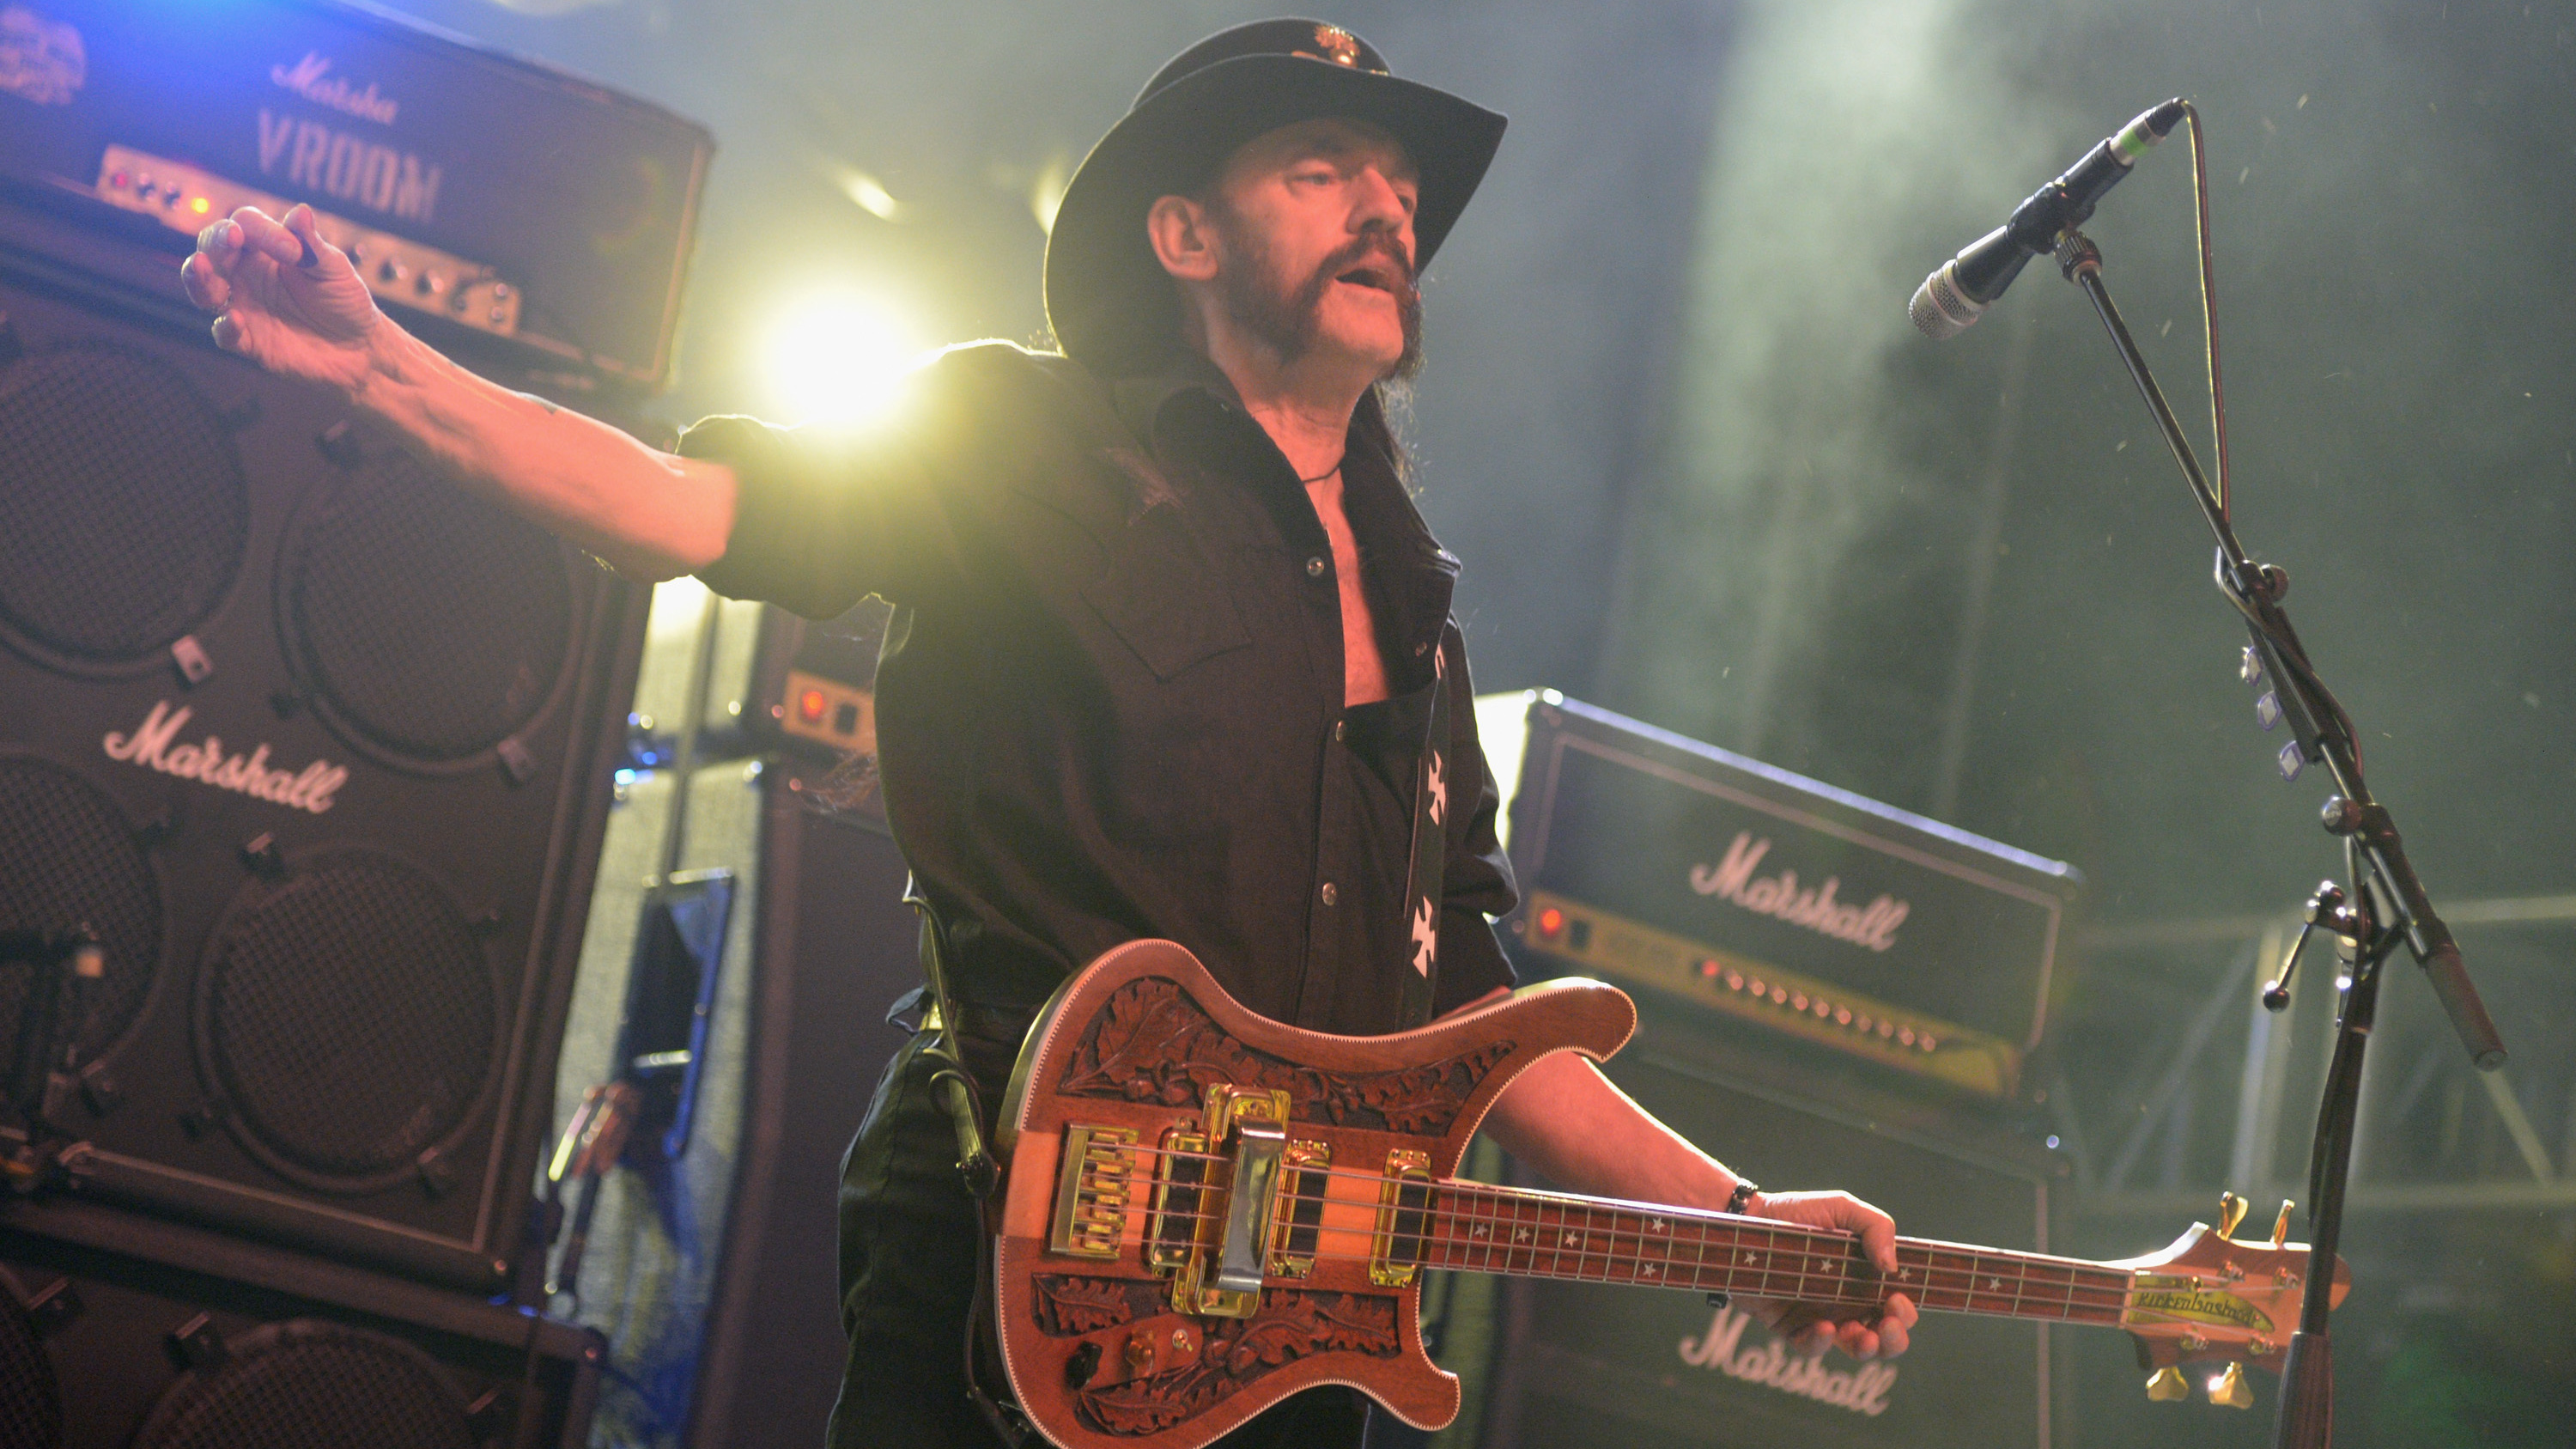 Put Lemmy On The Periodic Table: More Than 100,000 Sign Petition